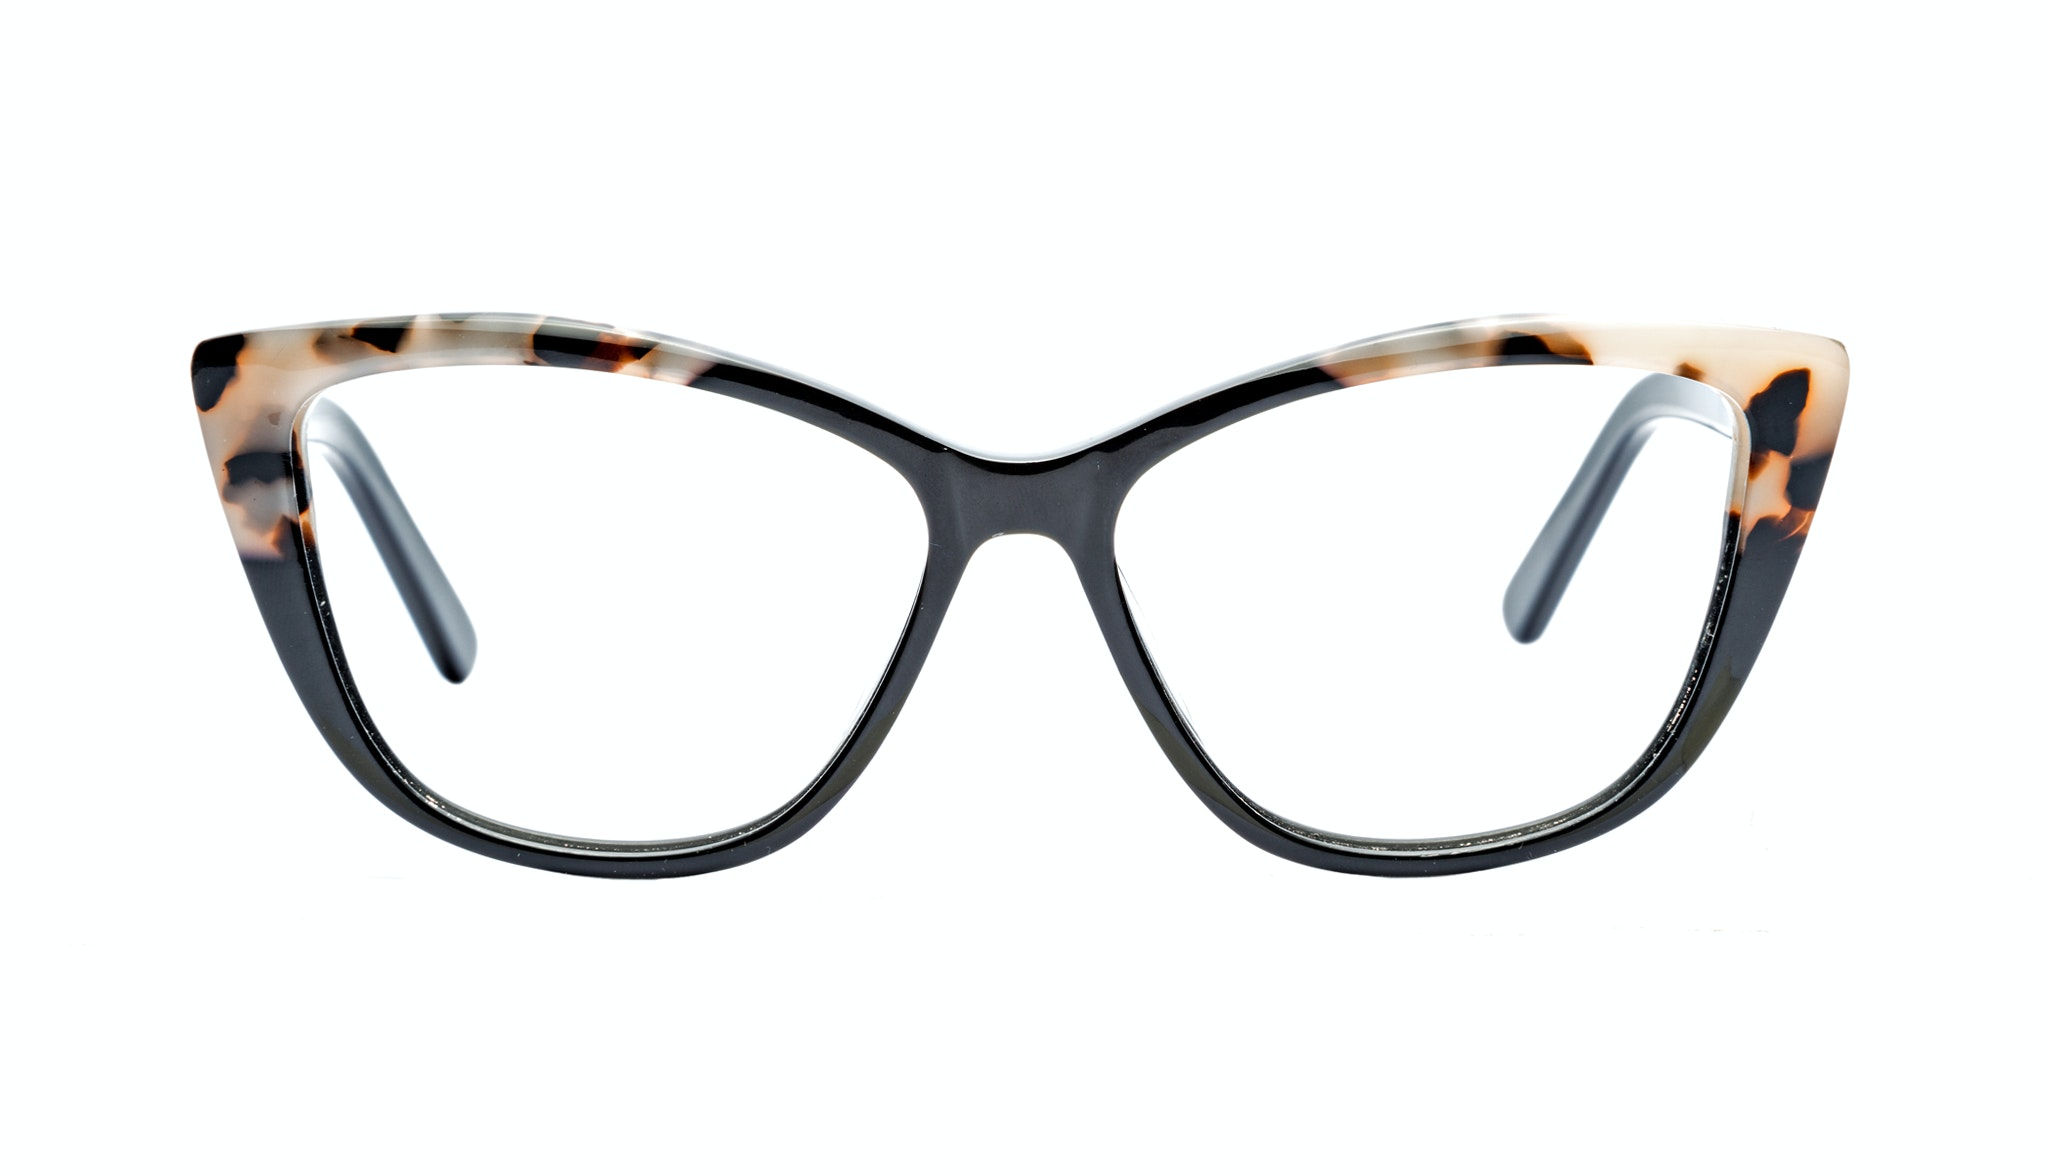 Affordable Fashion Glasses Cat Eye Daring Cateye Eyeglasses Women Dolled Up Ebony Granite Front